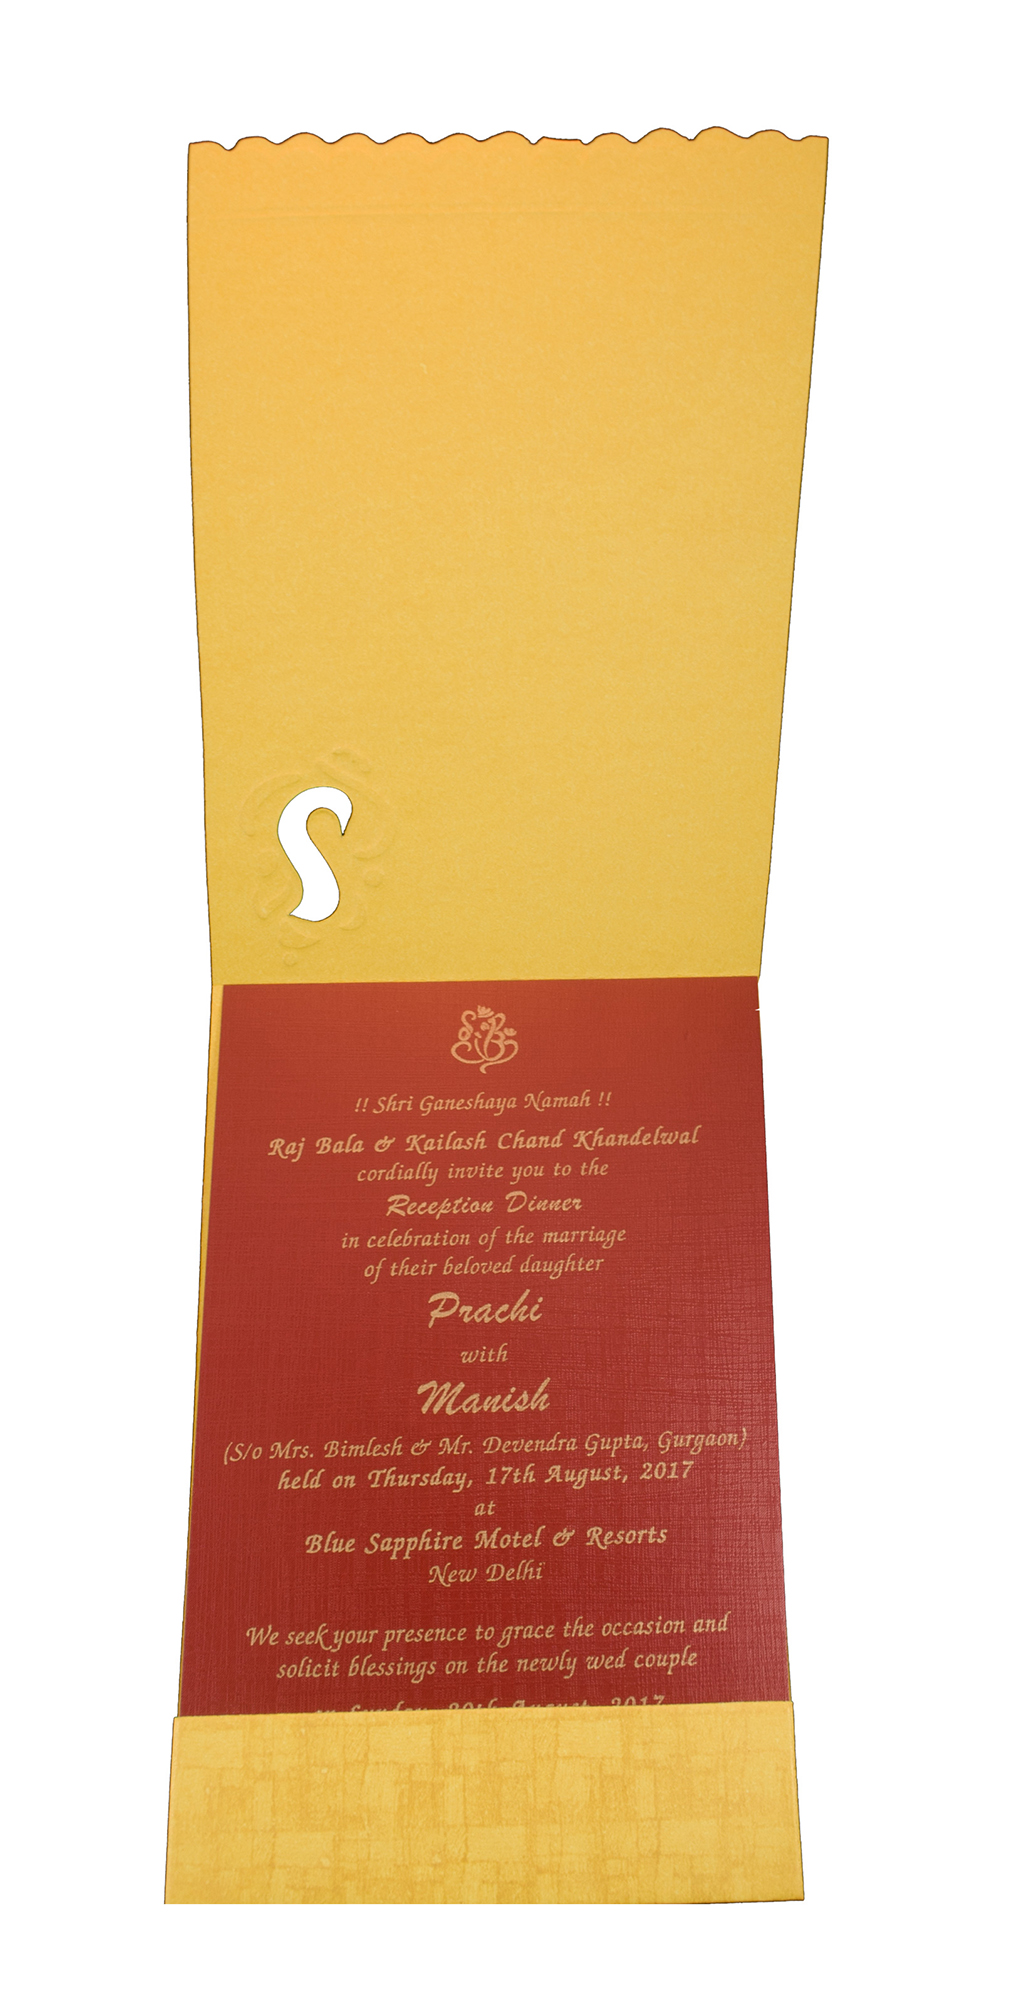 Single Insert Ganesha Wedding Card in Yellow and red